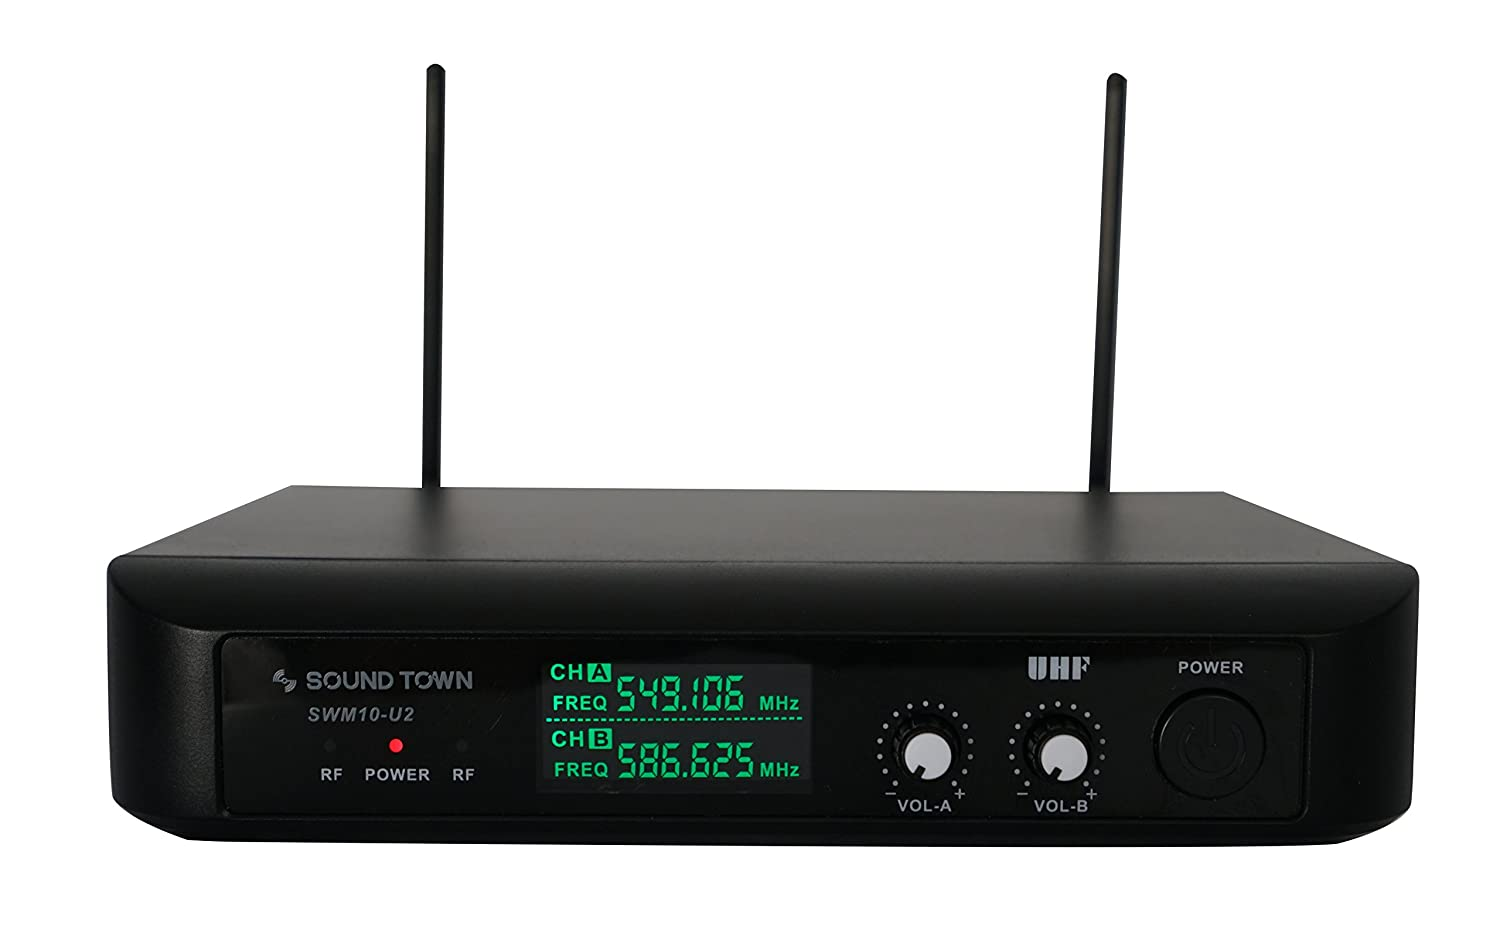 Sound Town Professional Dual-Channel UHF Handheld Wireless Microphone System with LED Display, 2 Handheld Mics (SWM10-U2HH) JAYLYN SOLUTIONS GROUP INC.